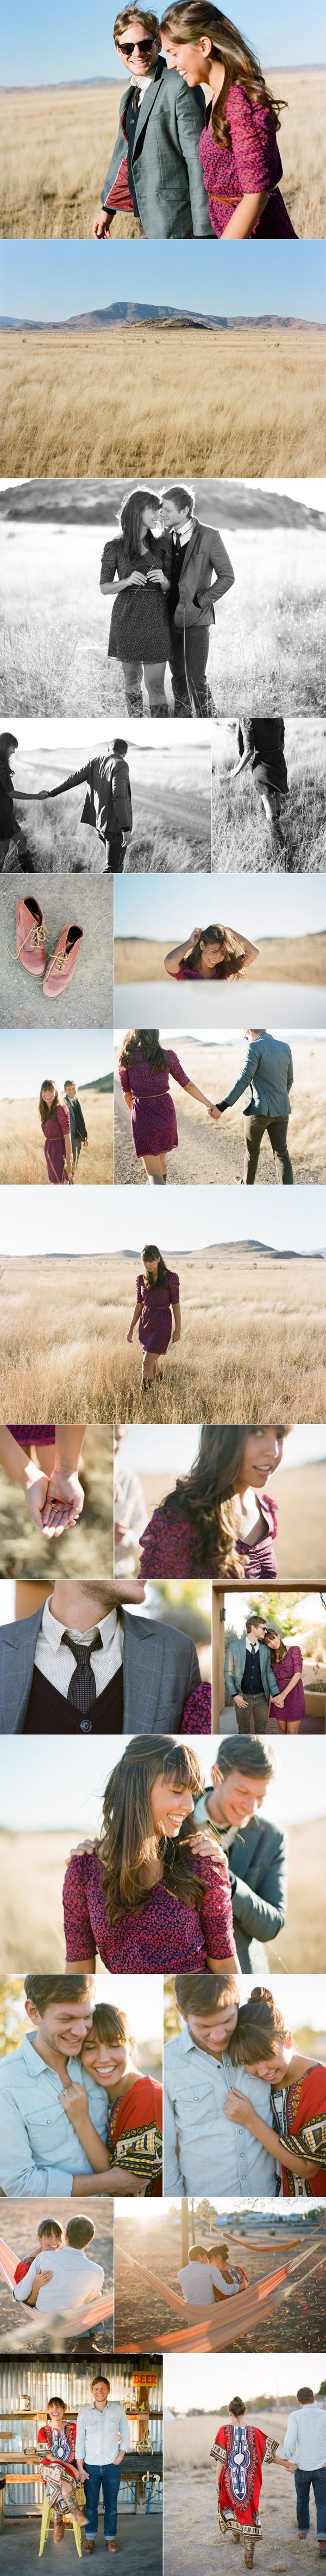 A Marfa Engagement & Wedding